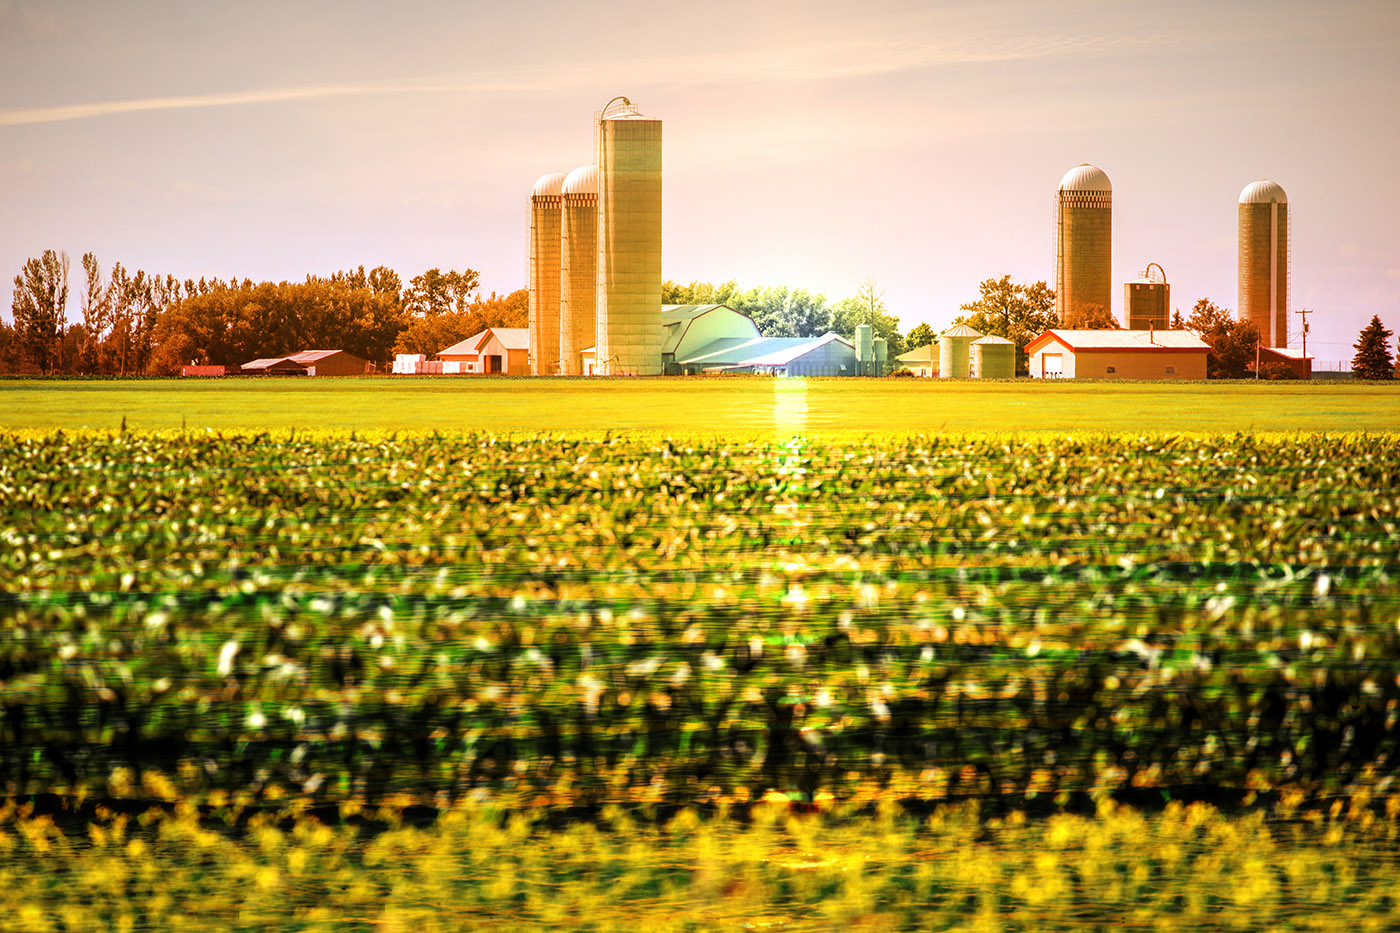 Modern Farmland and Agriculture Real Estate - stock photos and royalty-free images